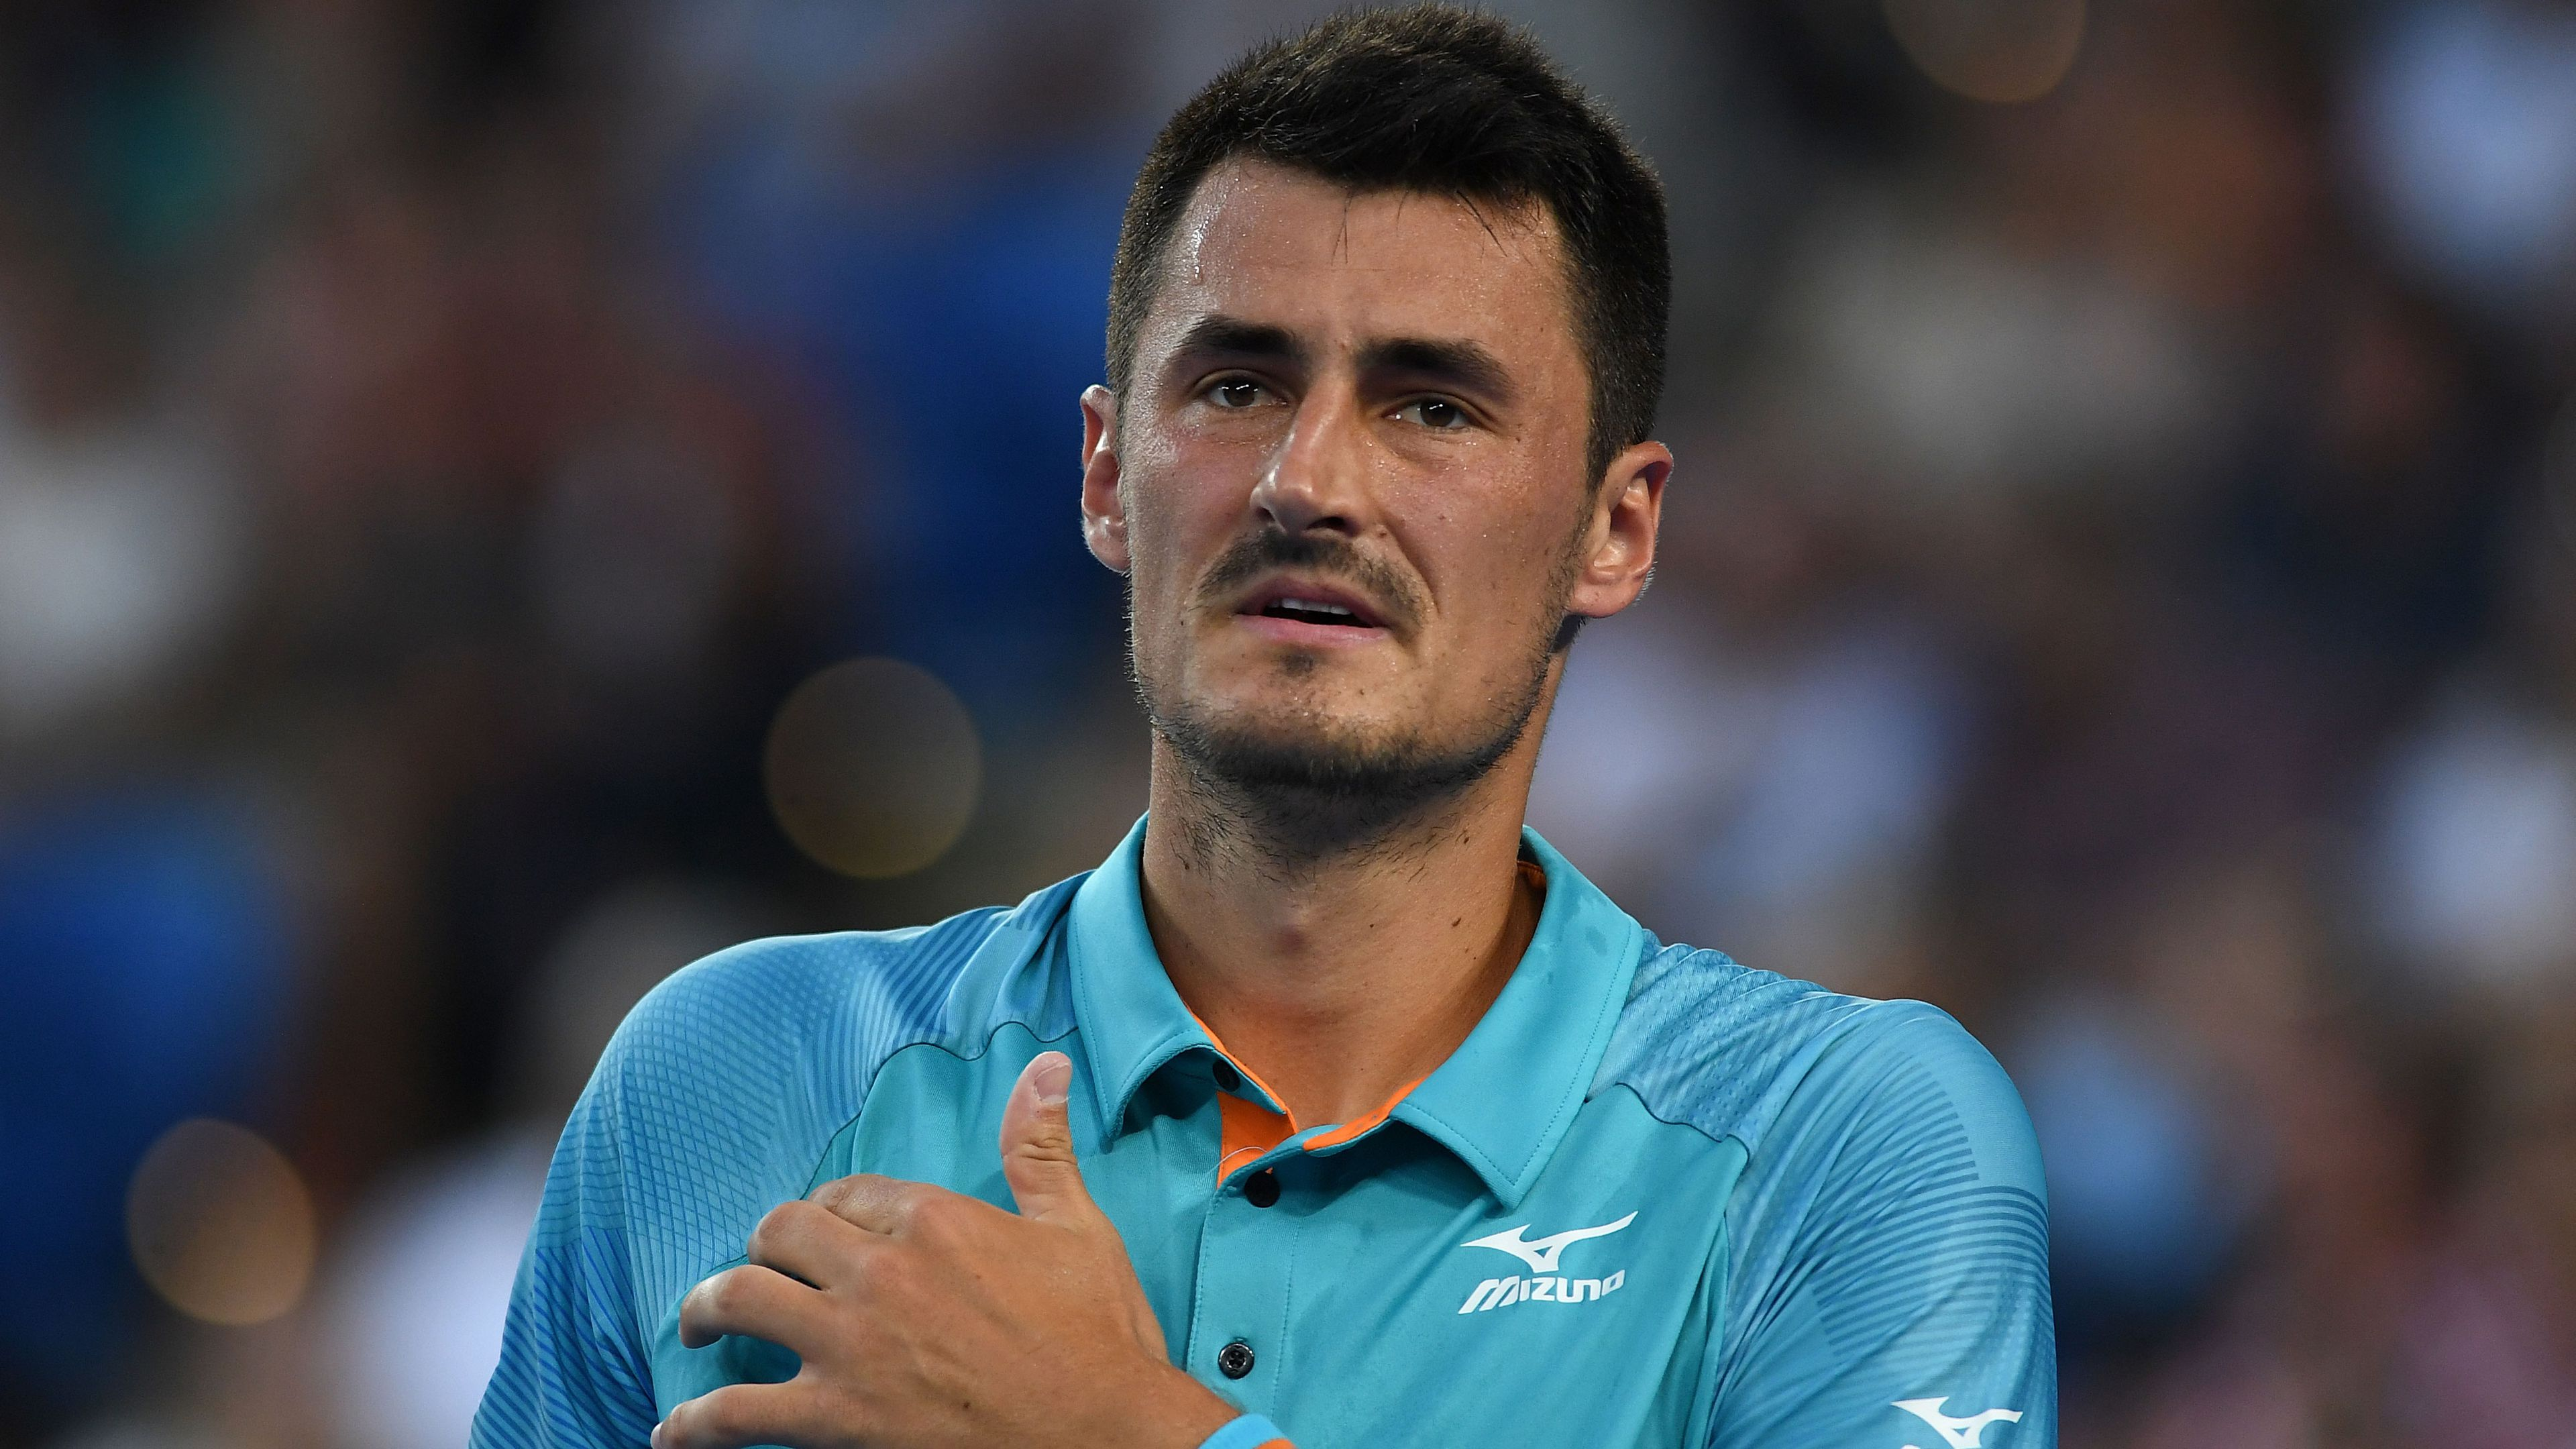 Tomic withdraws from Popyrin showdown in Acapulco